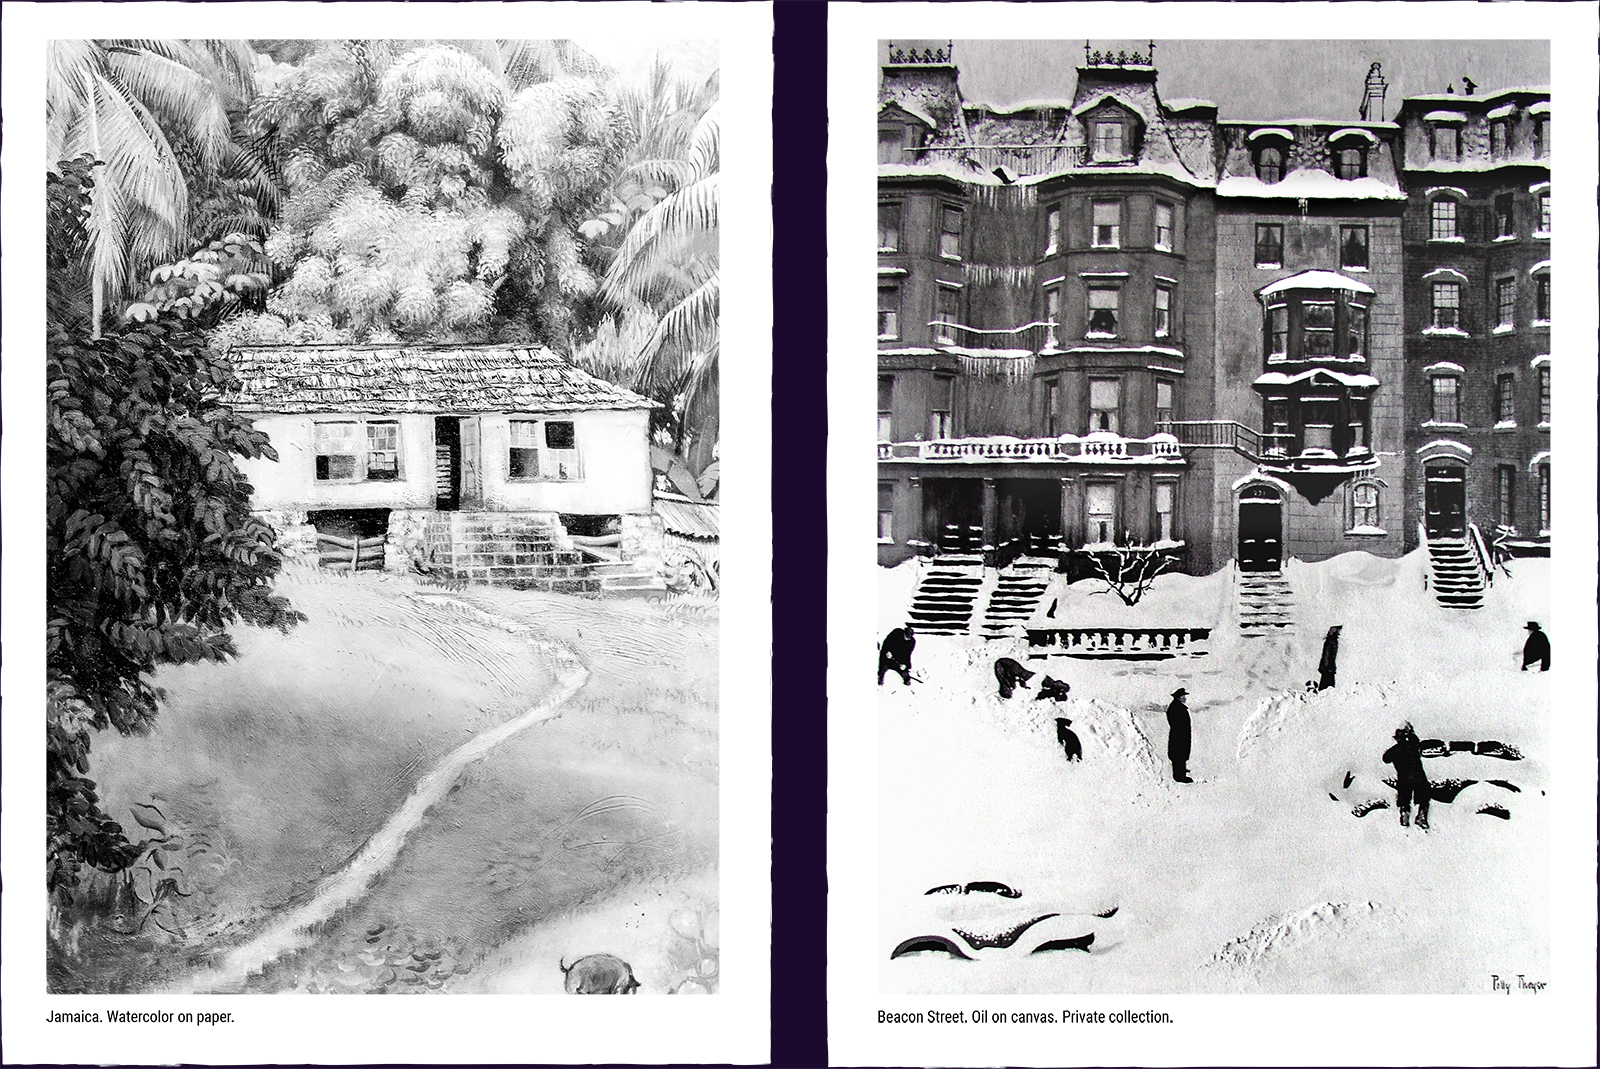 Two landscape paintings. (1) Jamaica. Watercolor on paper. (2) Beacon Street. Oil on canvas. Private collection.